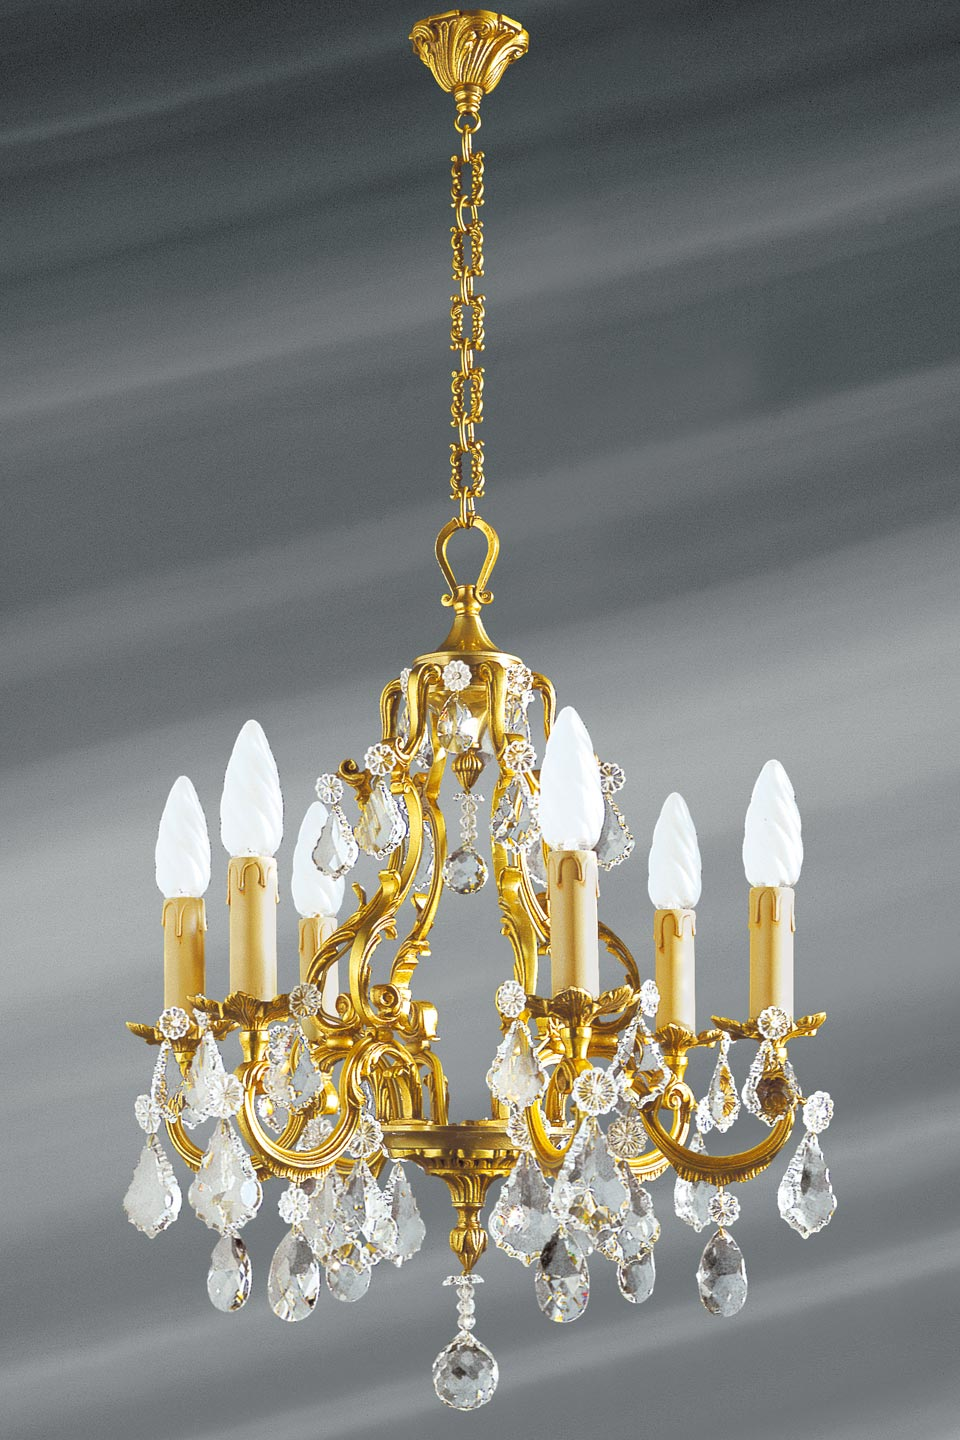 old gold patinated solid bronze chandelier 6 5 or 3 light versions